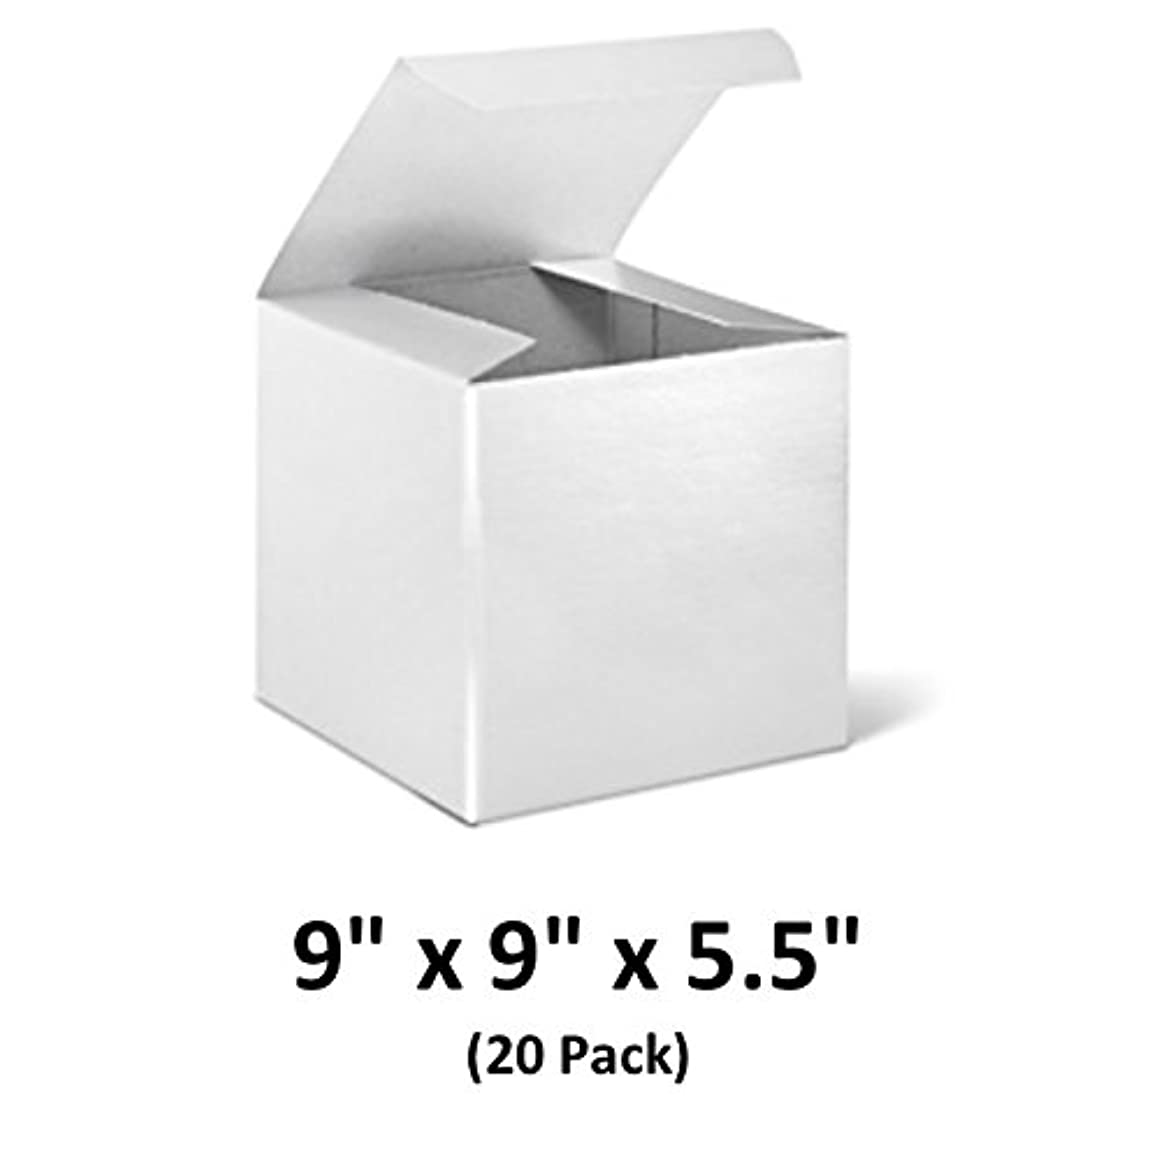 White Cardboard Tuck Top Gift Boxes with Lids, 9x9x5.5 (20 Pack) for Gifts, Crafting & Cupcakes | MagicWater Supply